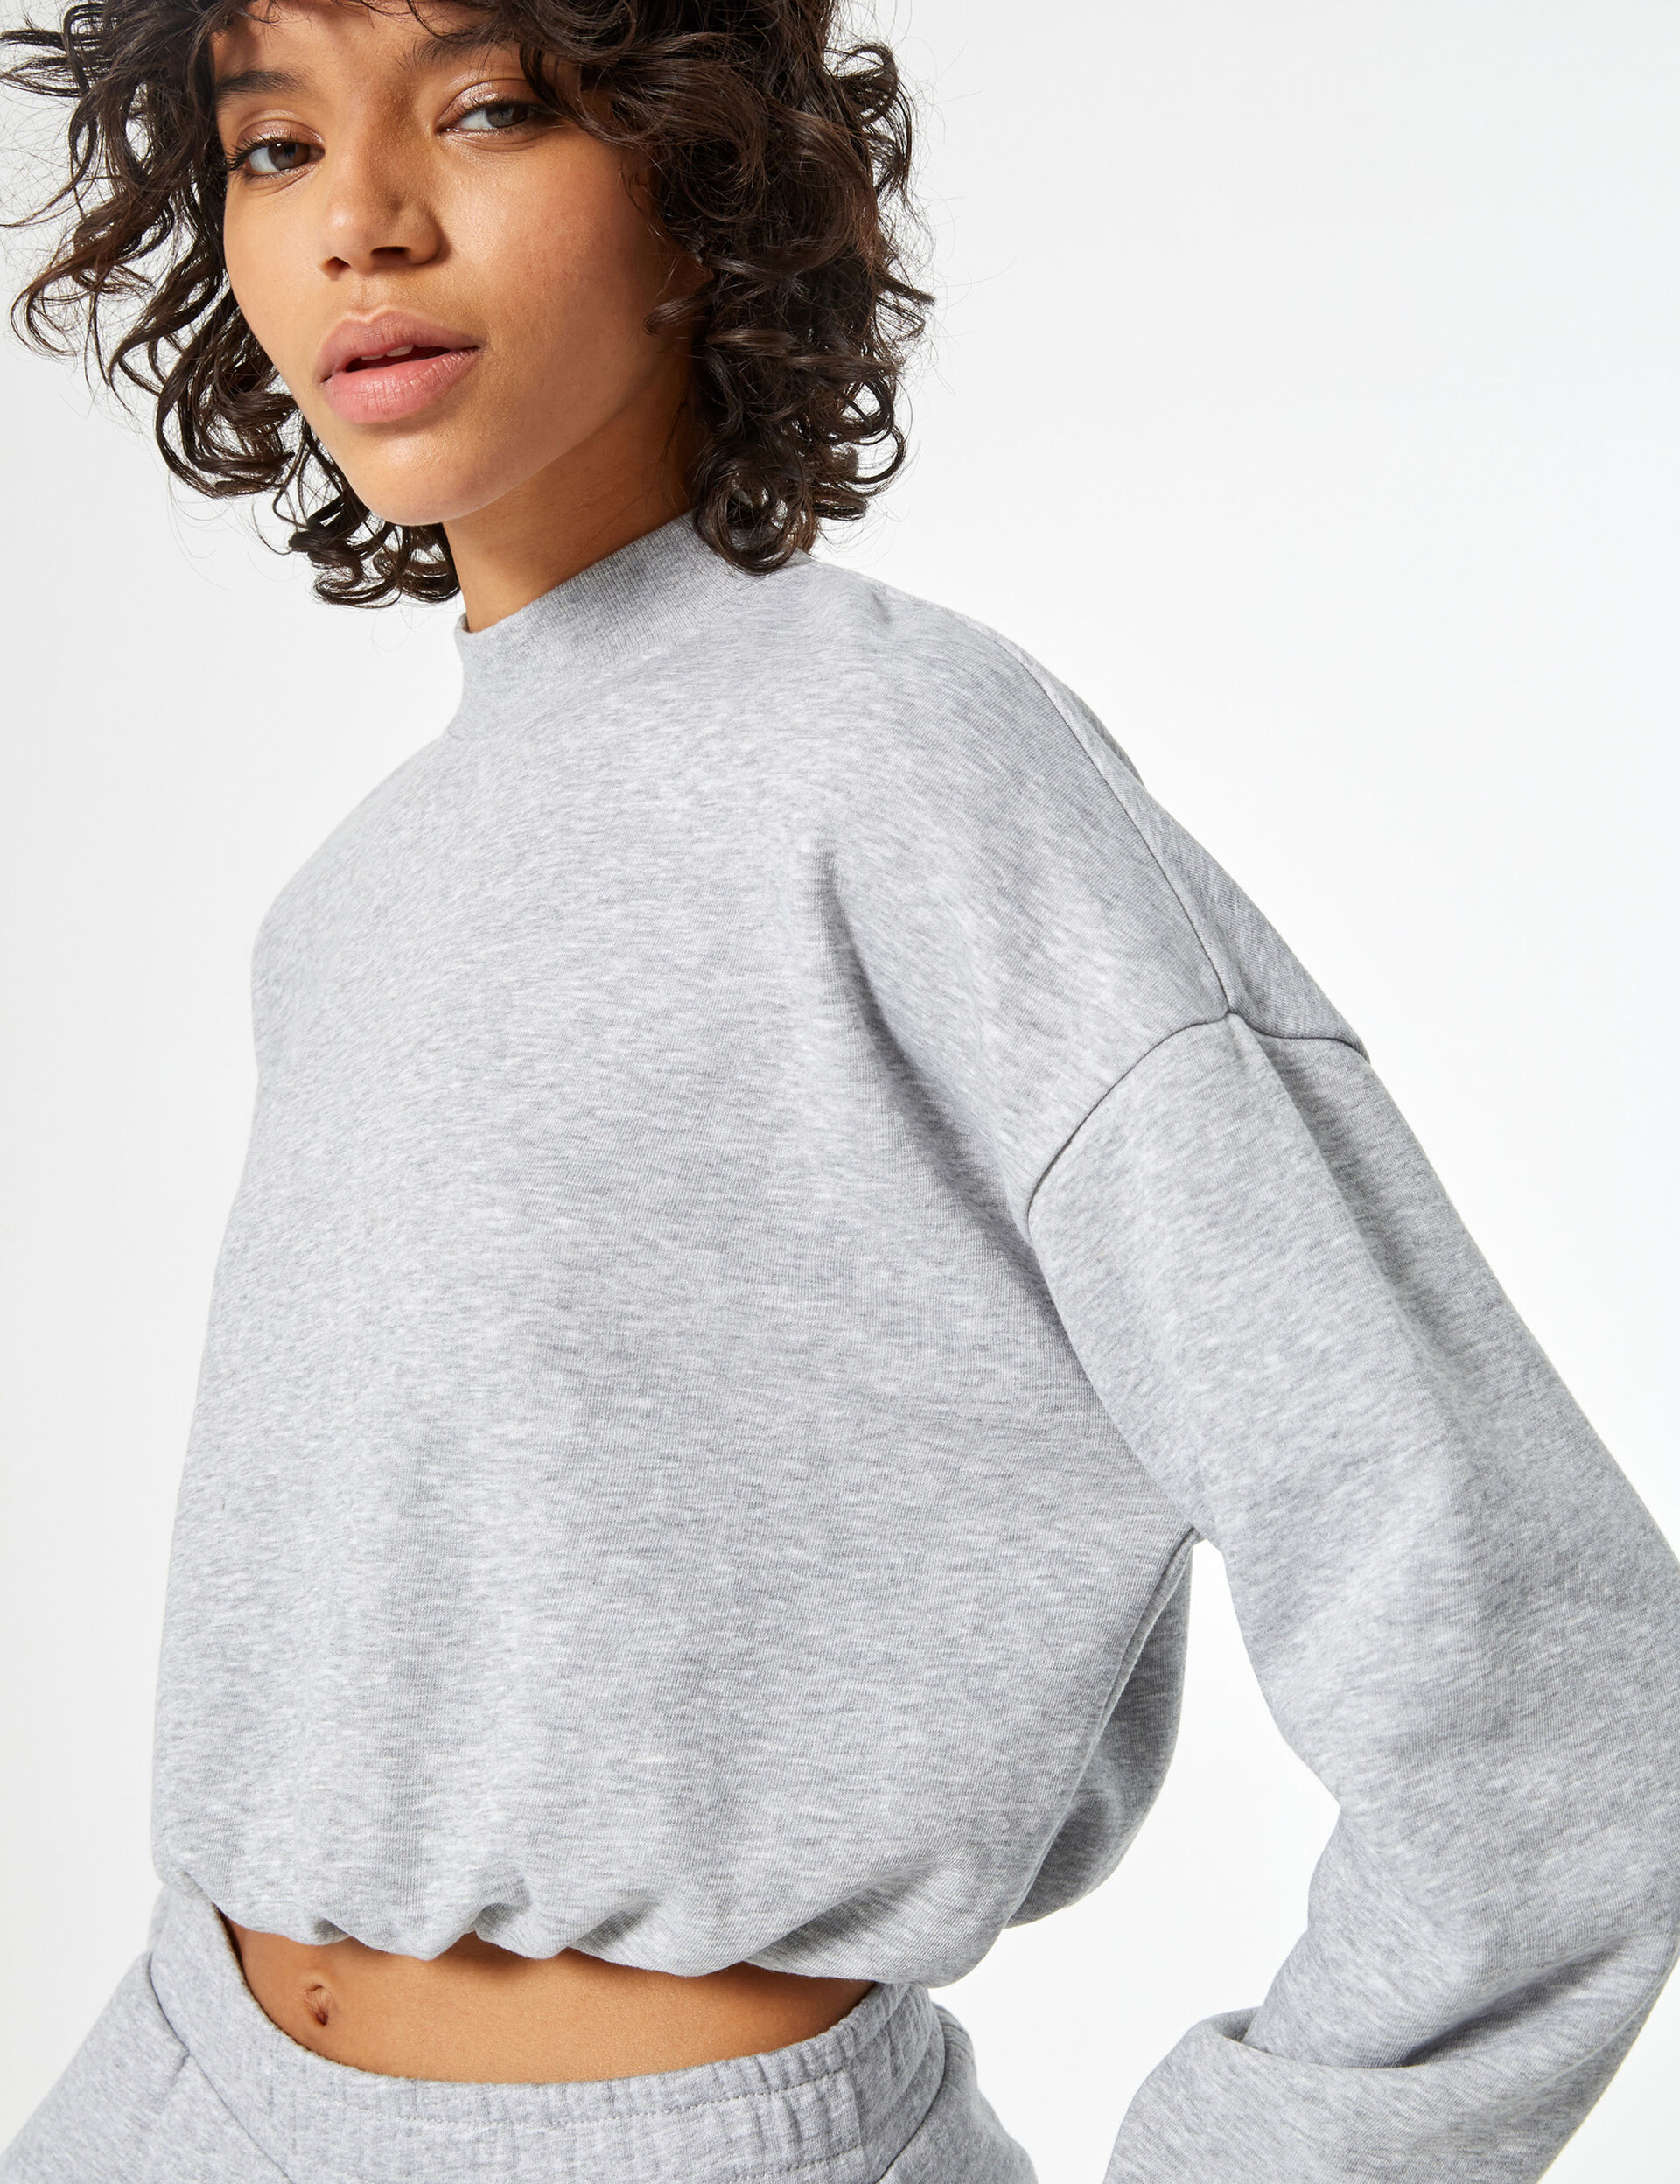 Cropped high-neck sweatshirt